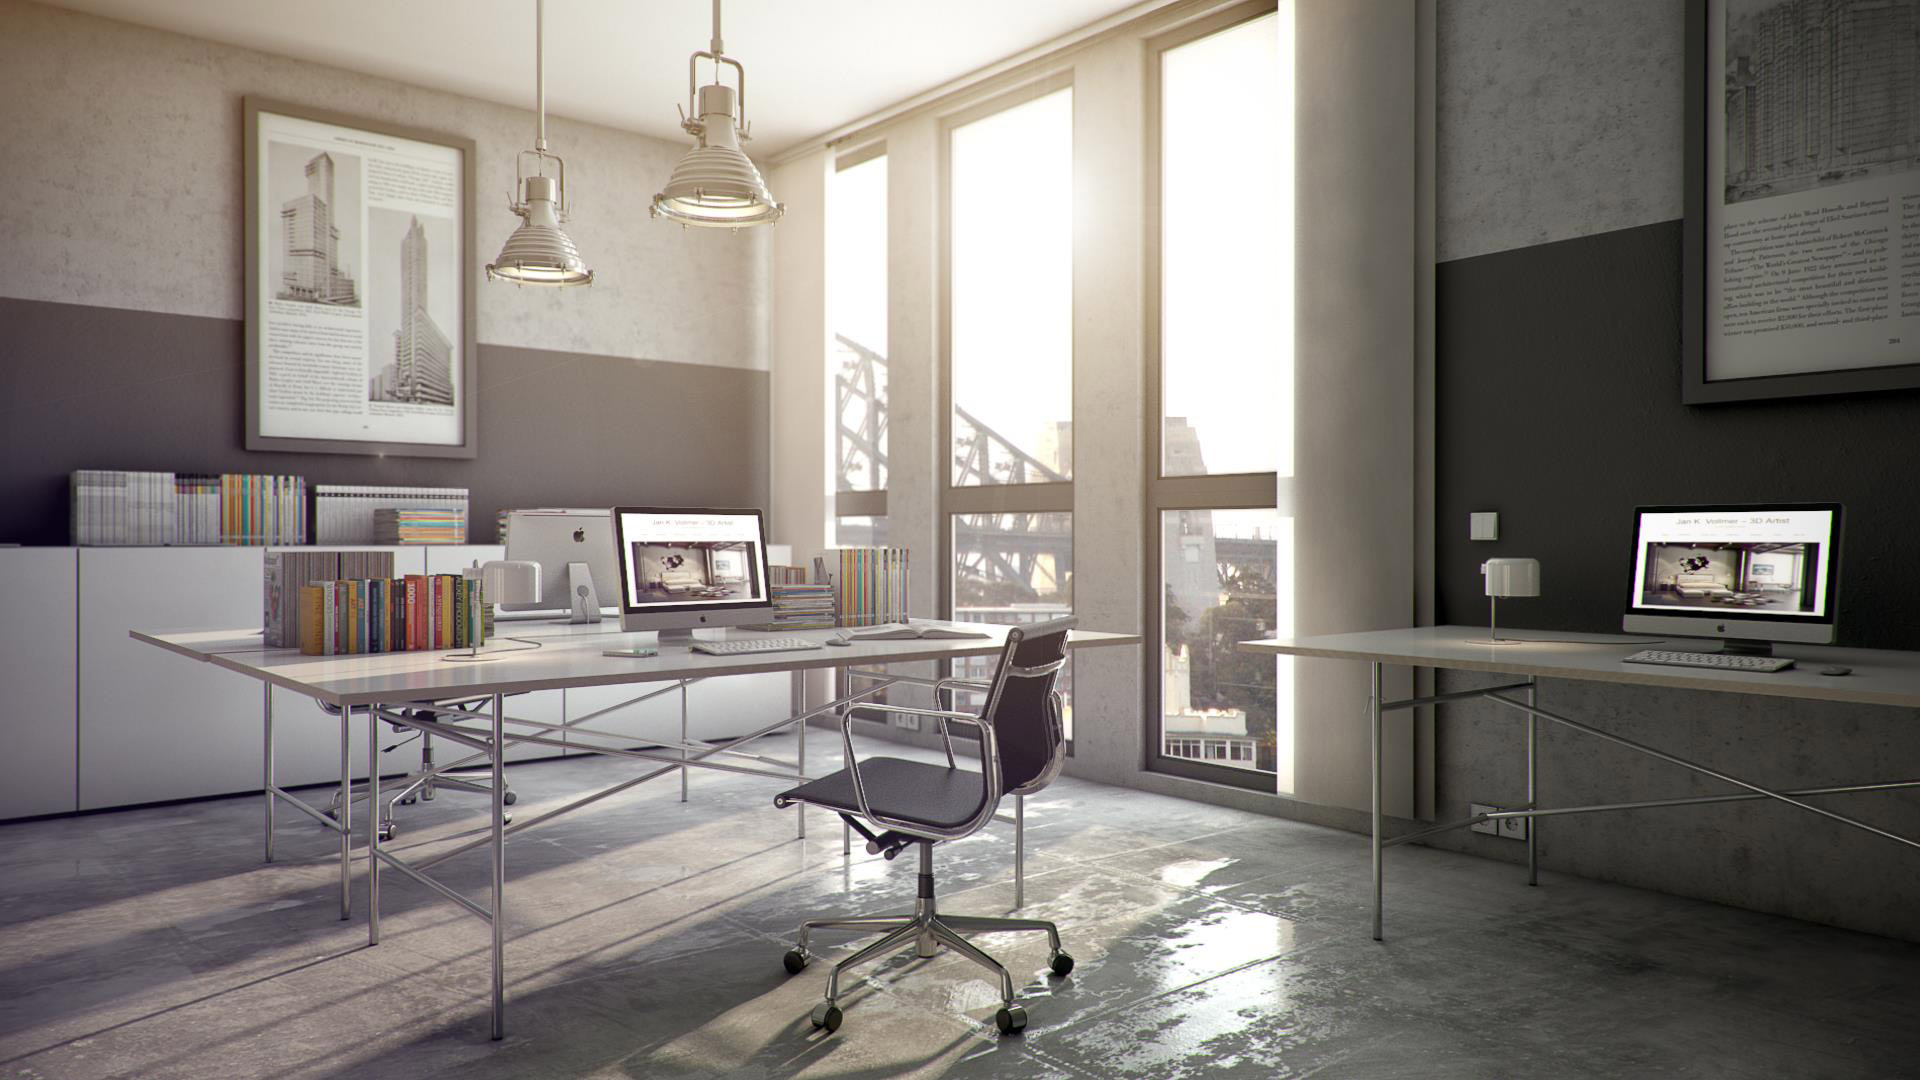 Vwartclub how to shoot 3d interiors for Architecture interieur 3d